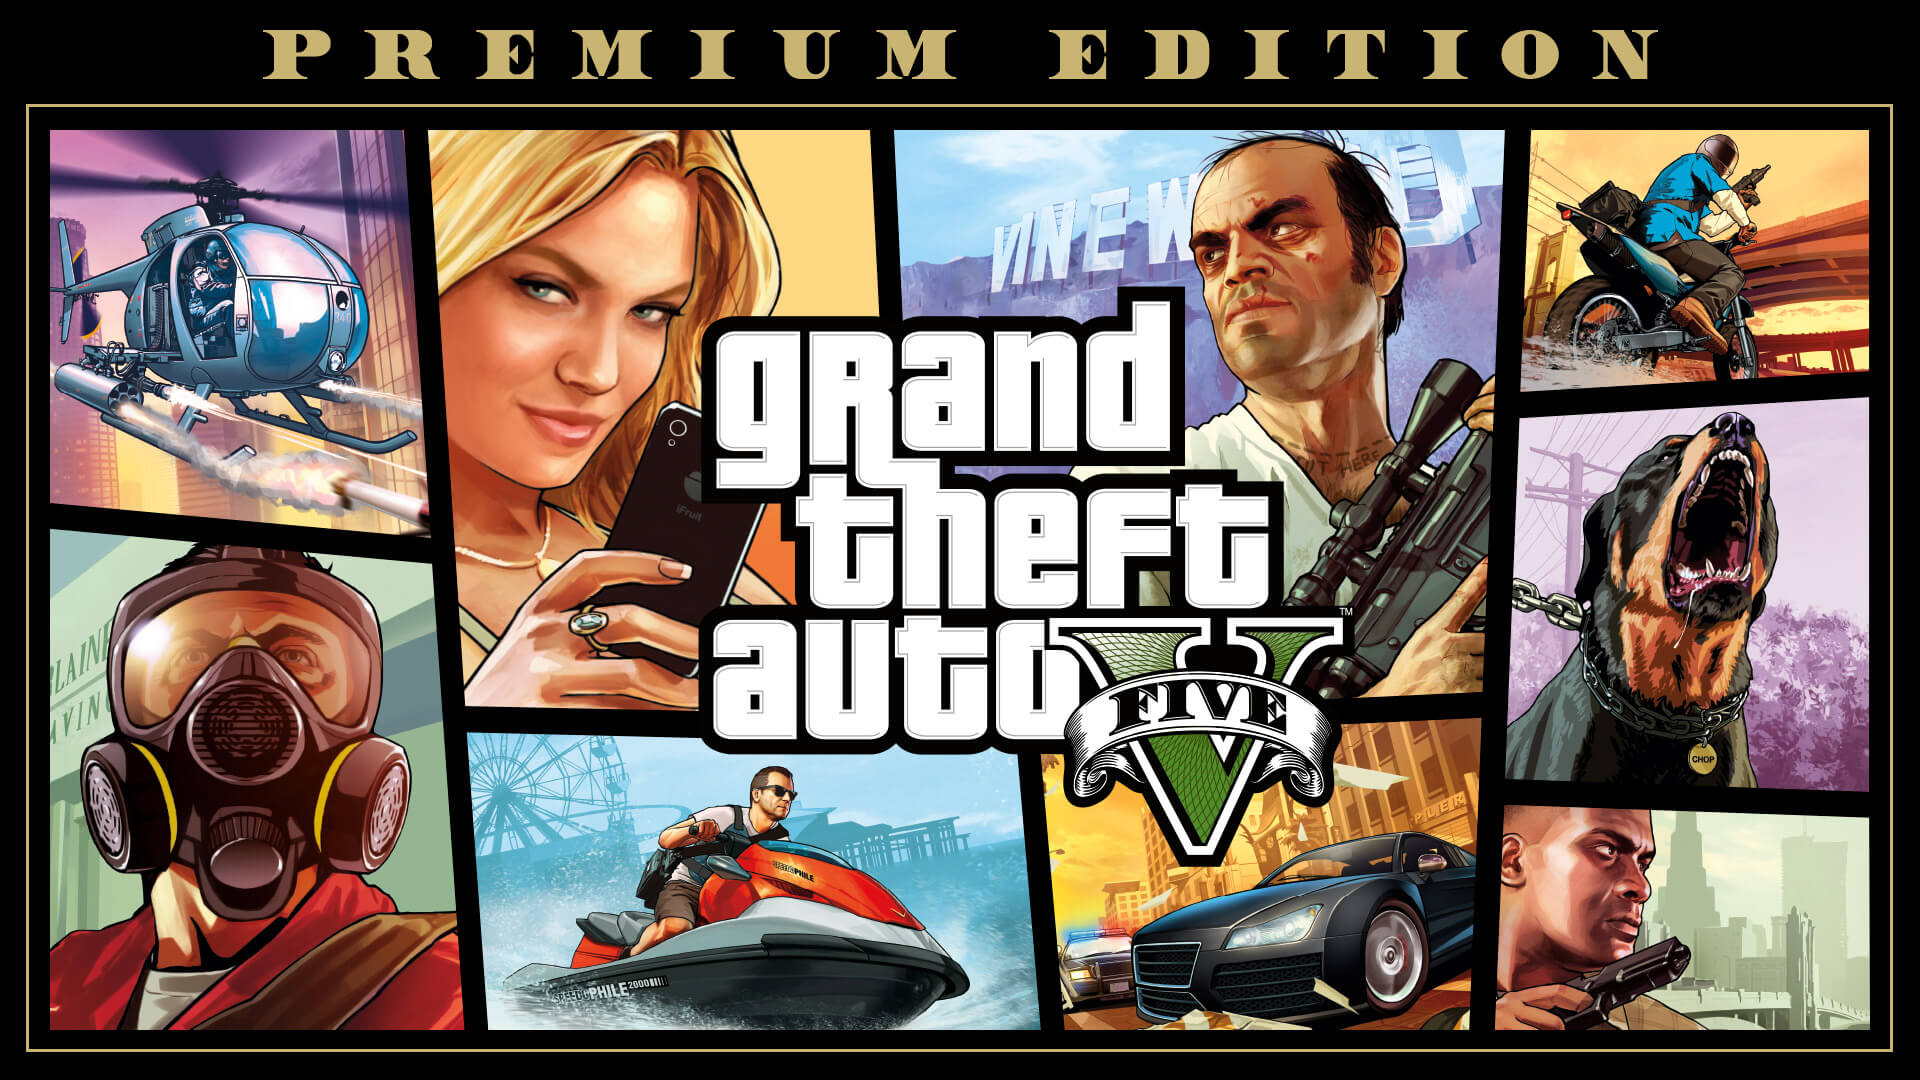 Download the full GTA V Game for Android in APK format with direct link and 0